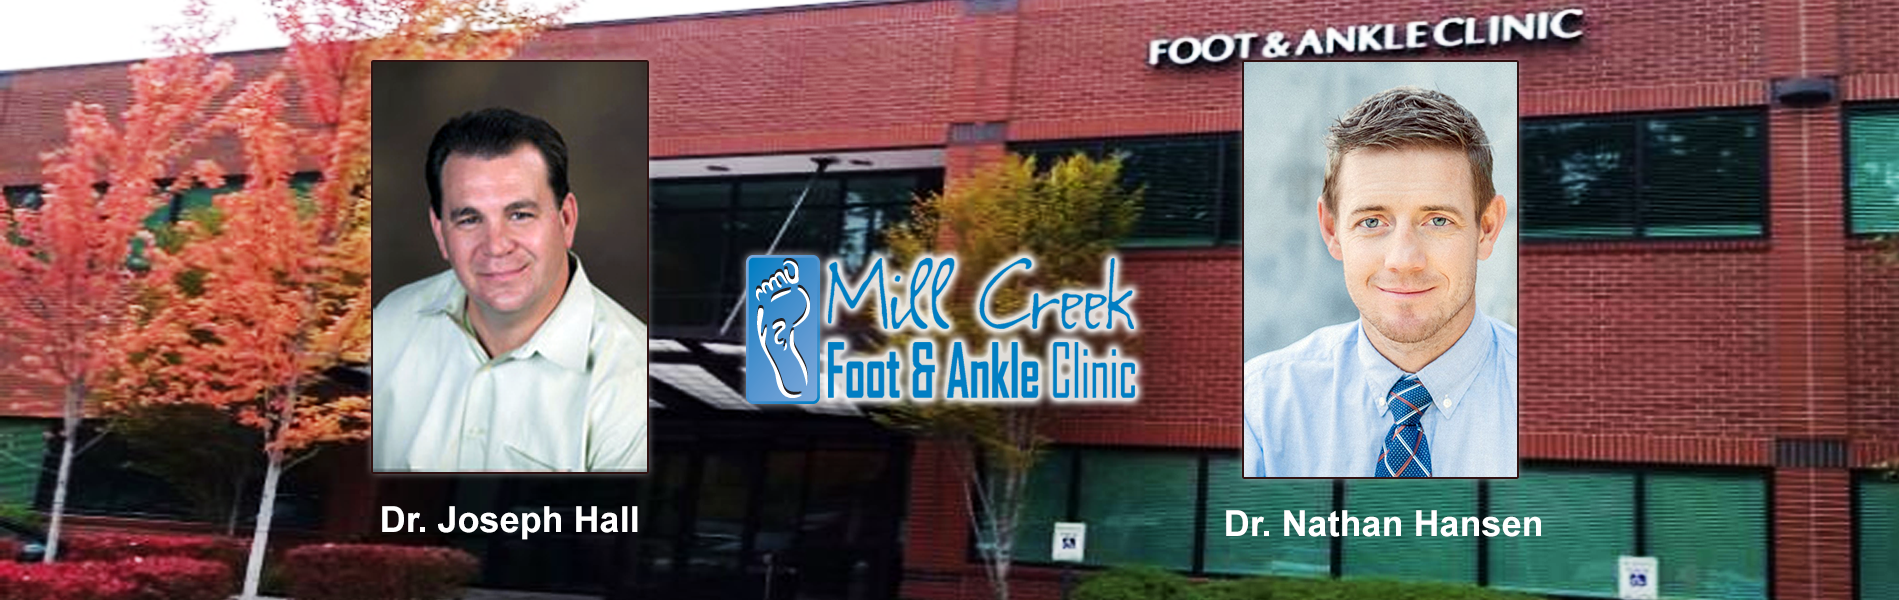 MillCreekOfficeBanner-Updated